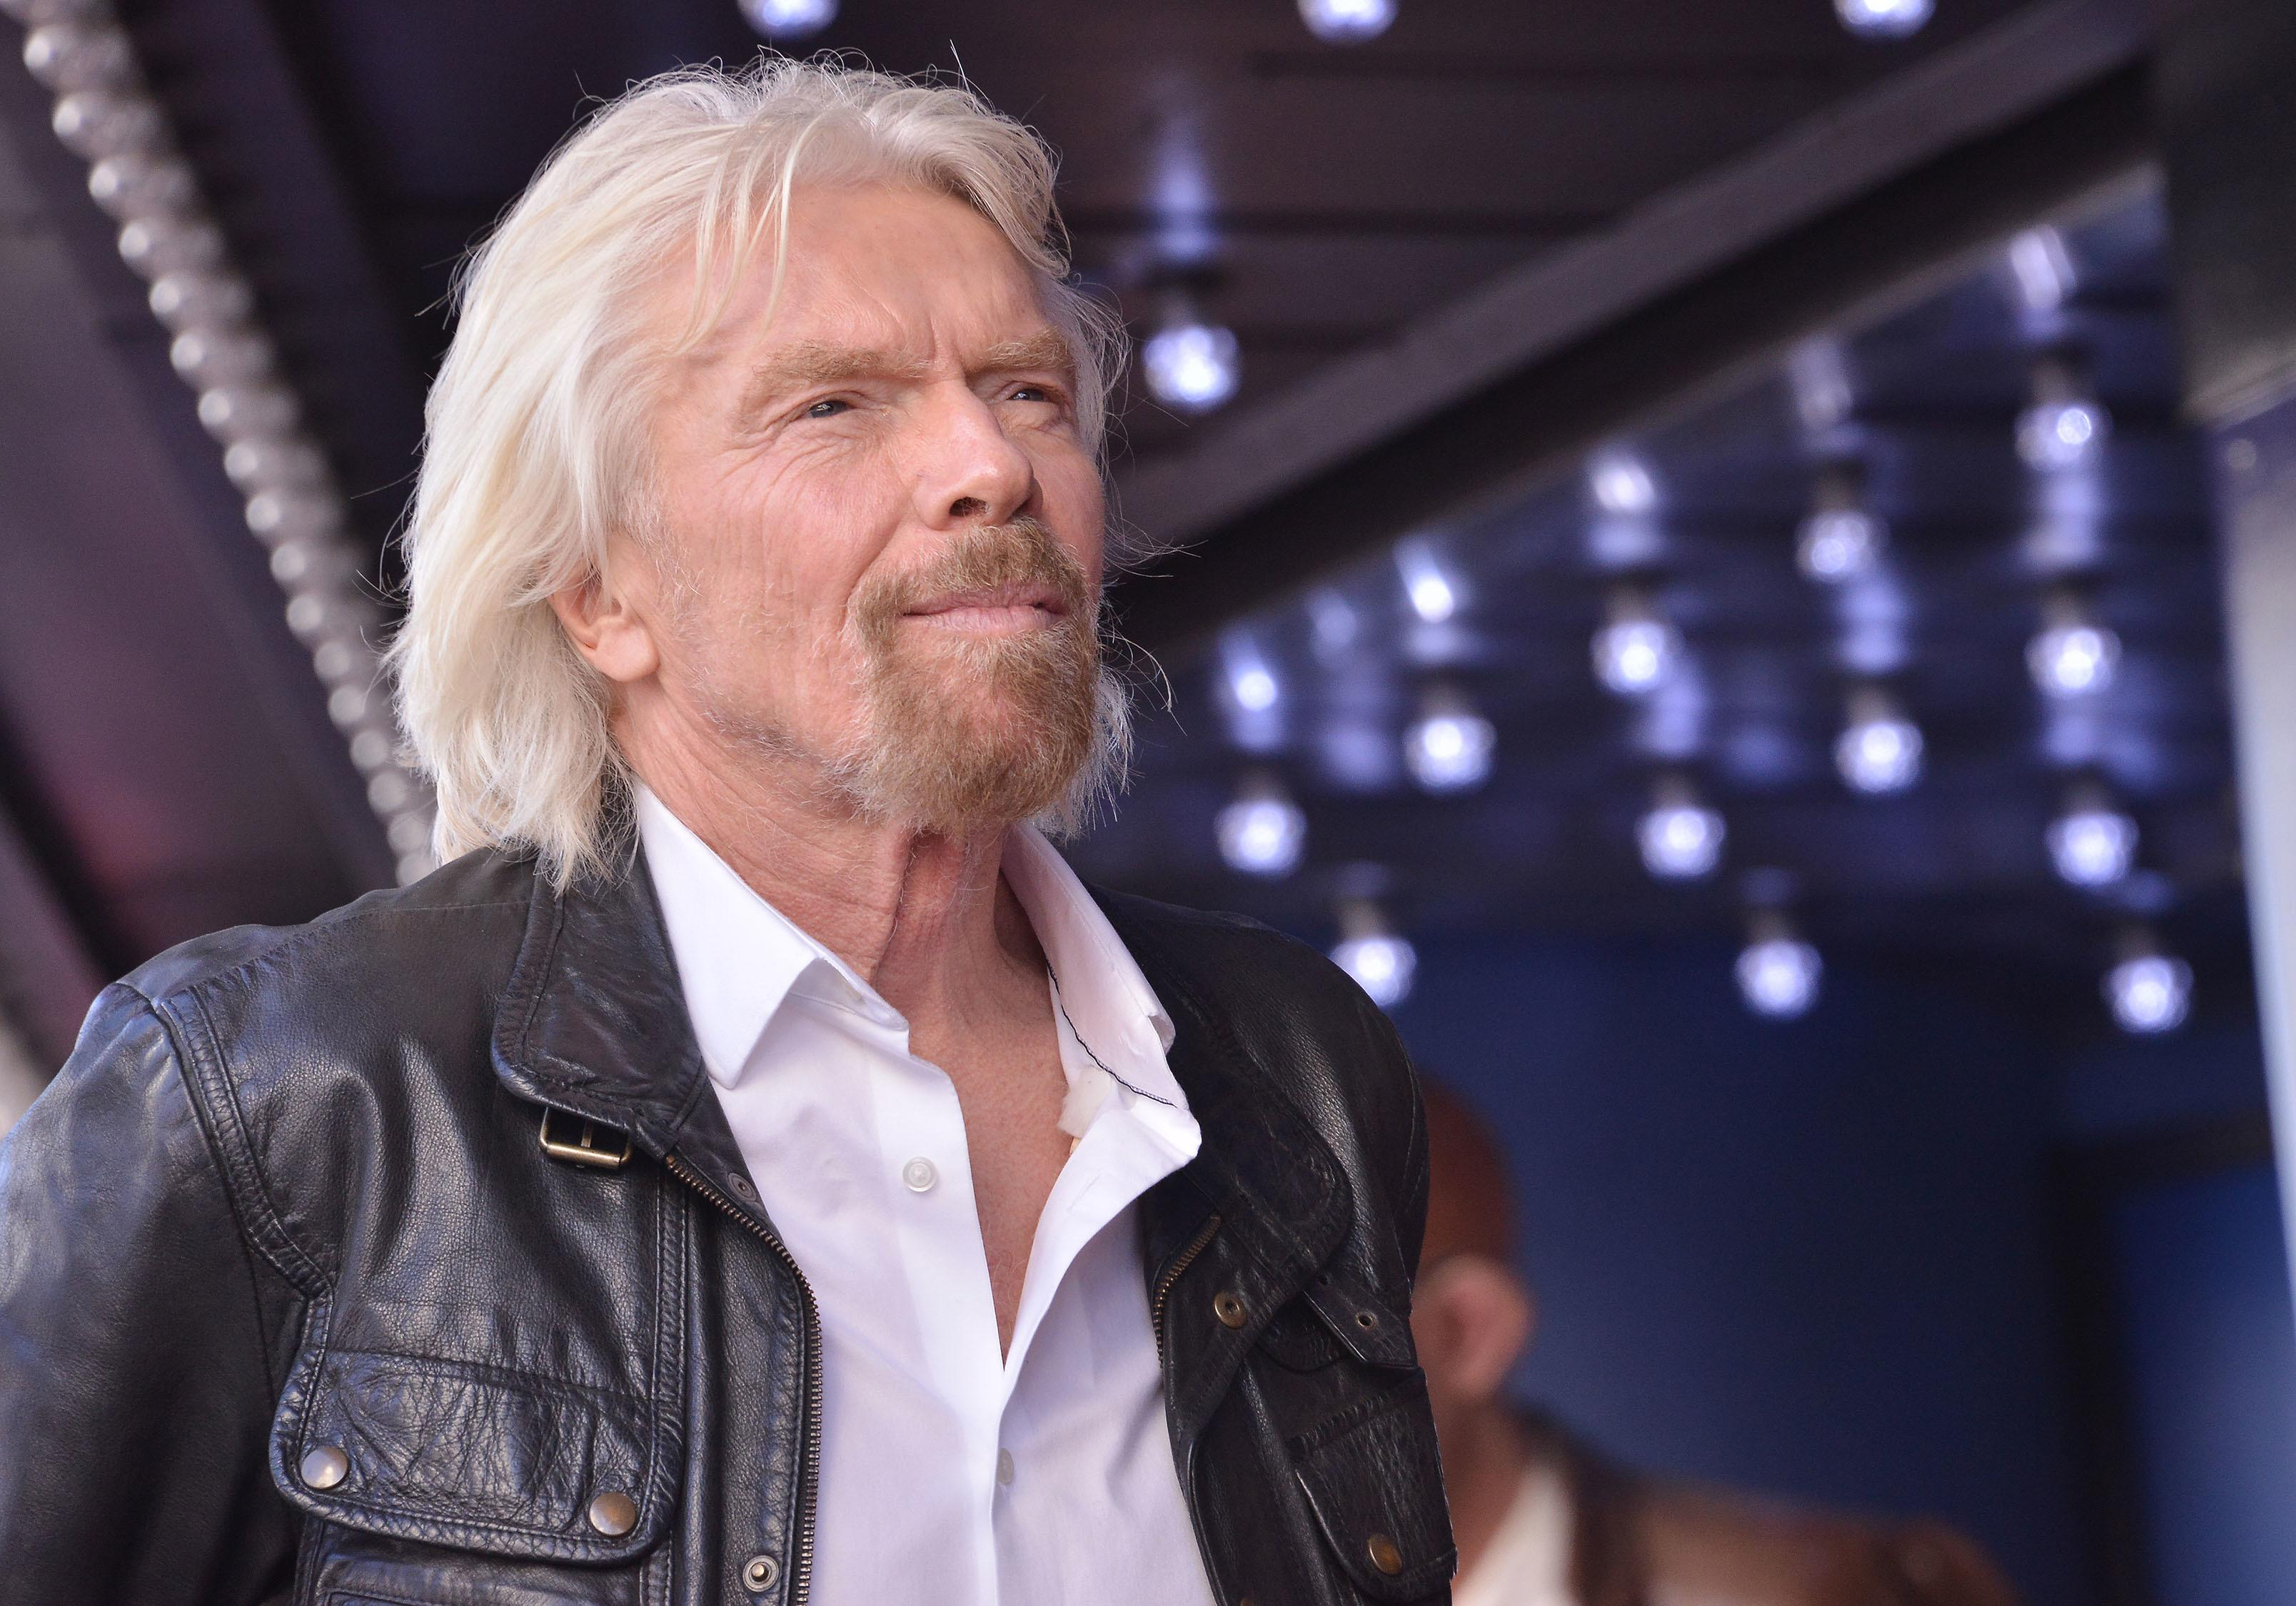 Generation of young Brits held back by lack of entrepreneurial role models